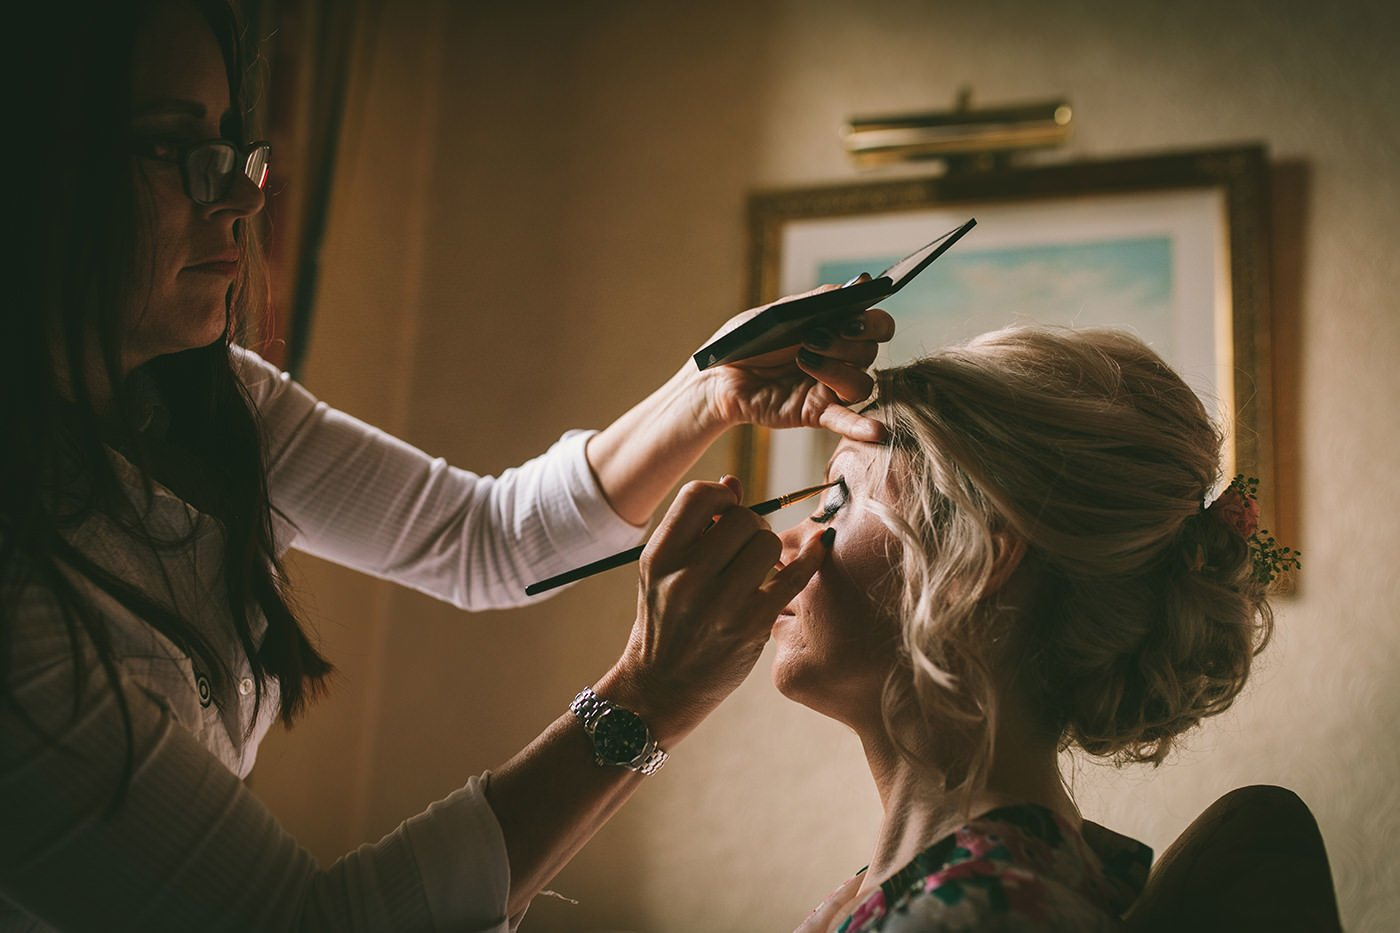 Shropshire Wedding Makeup Artist Applies make up to bride